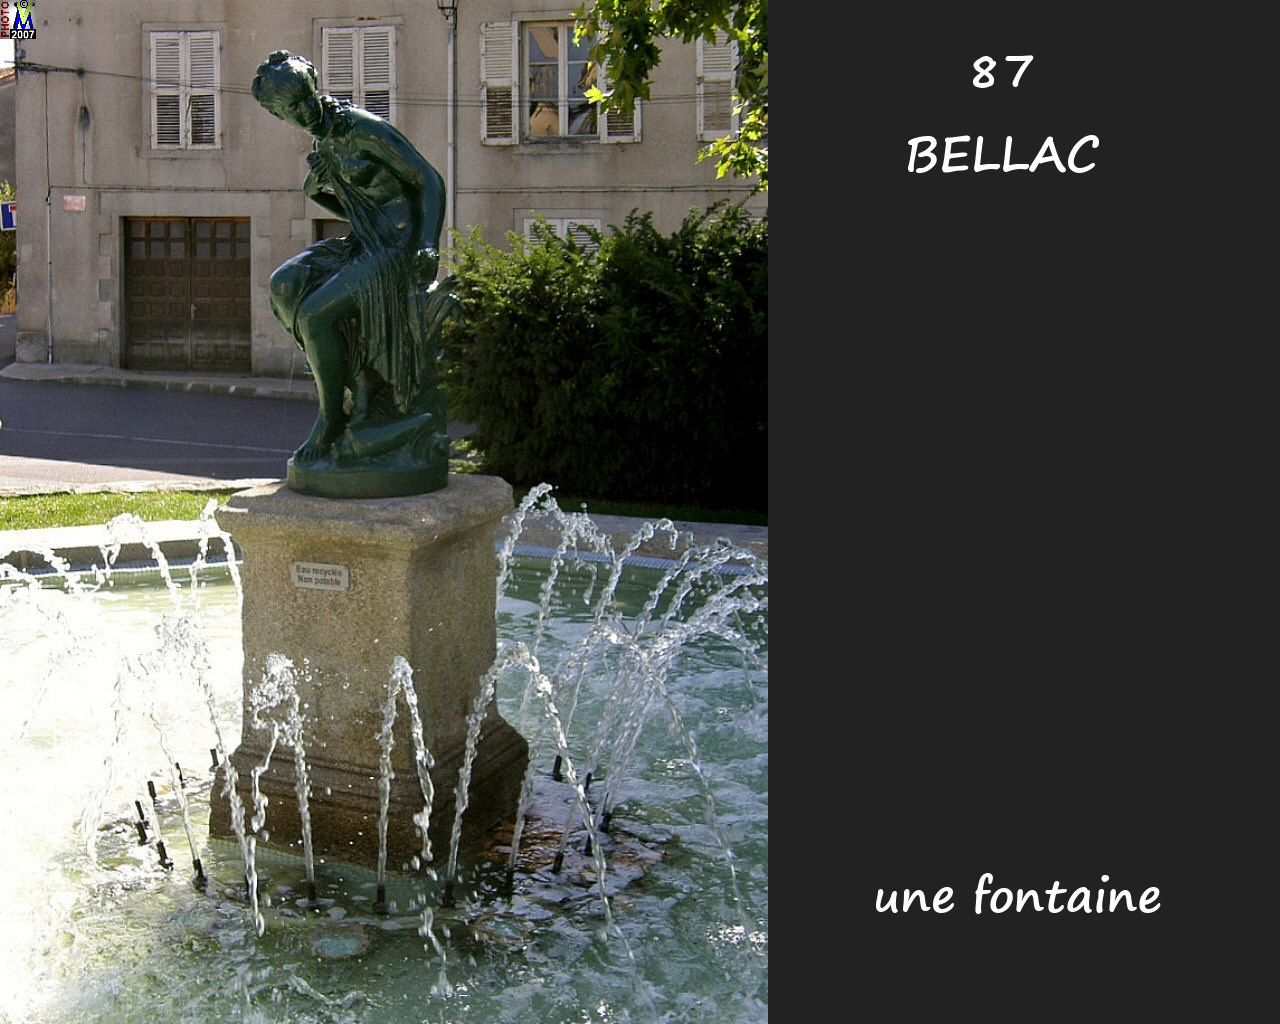 87BELLAC_fontaine_100.jpg